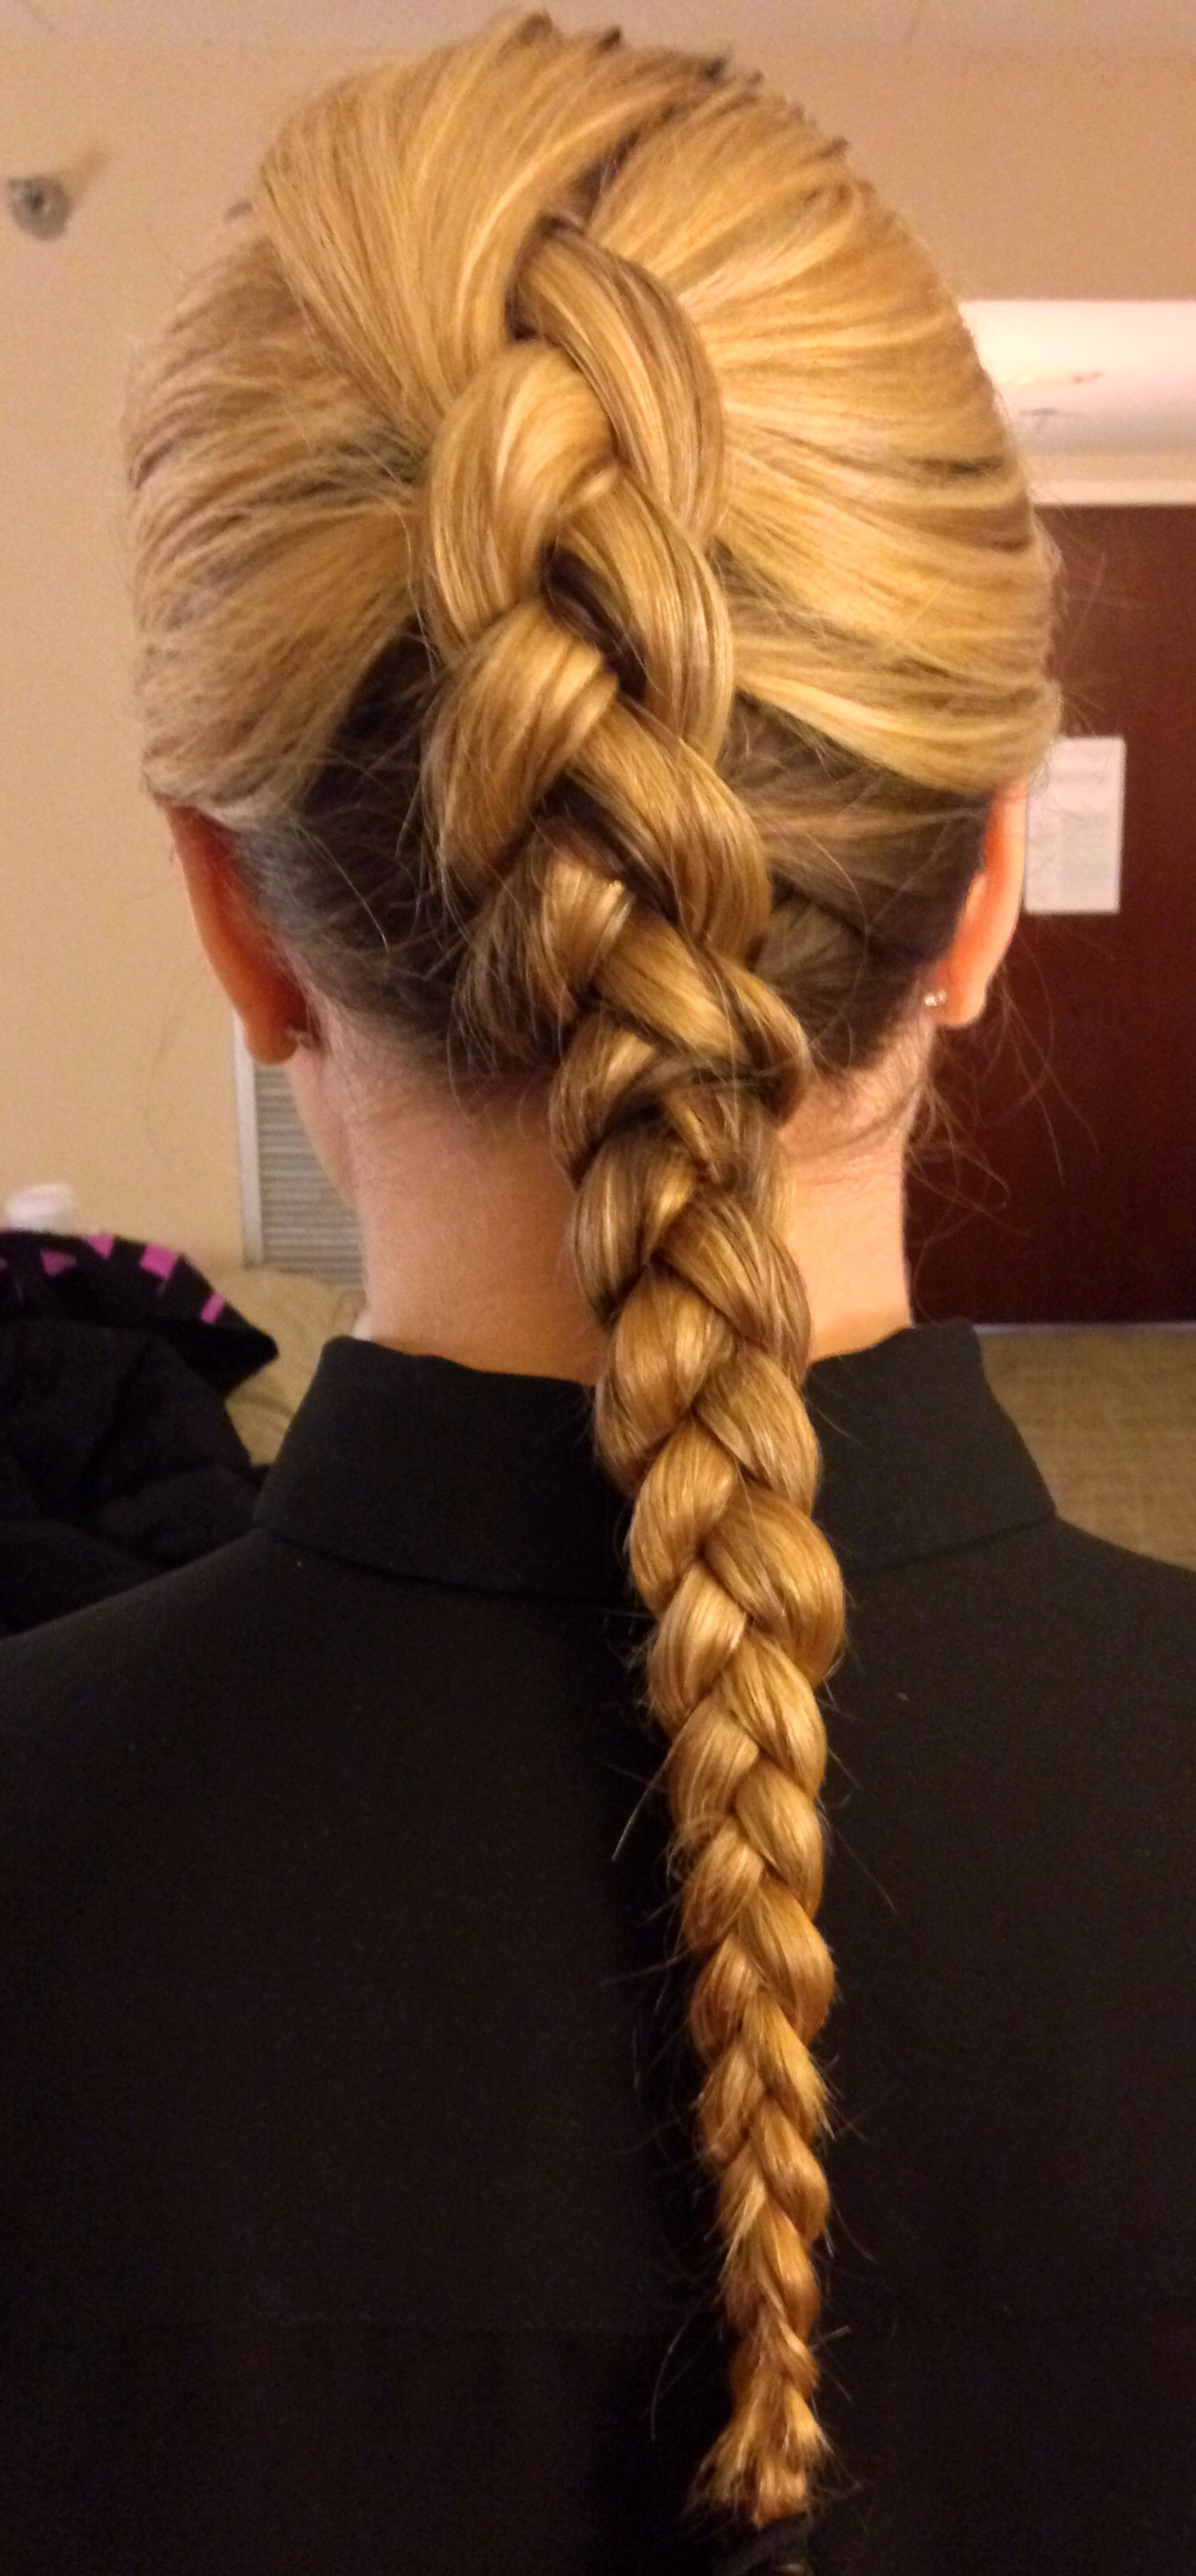 my hair for flight attendant training! | faa approved